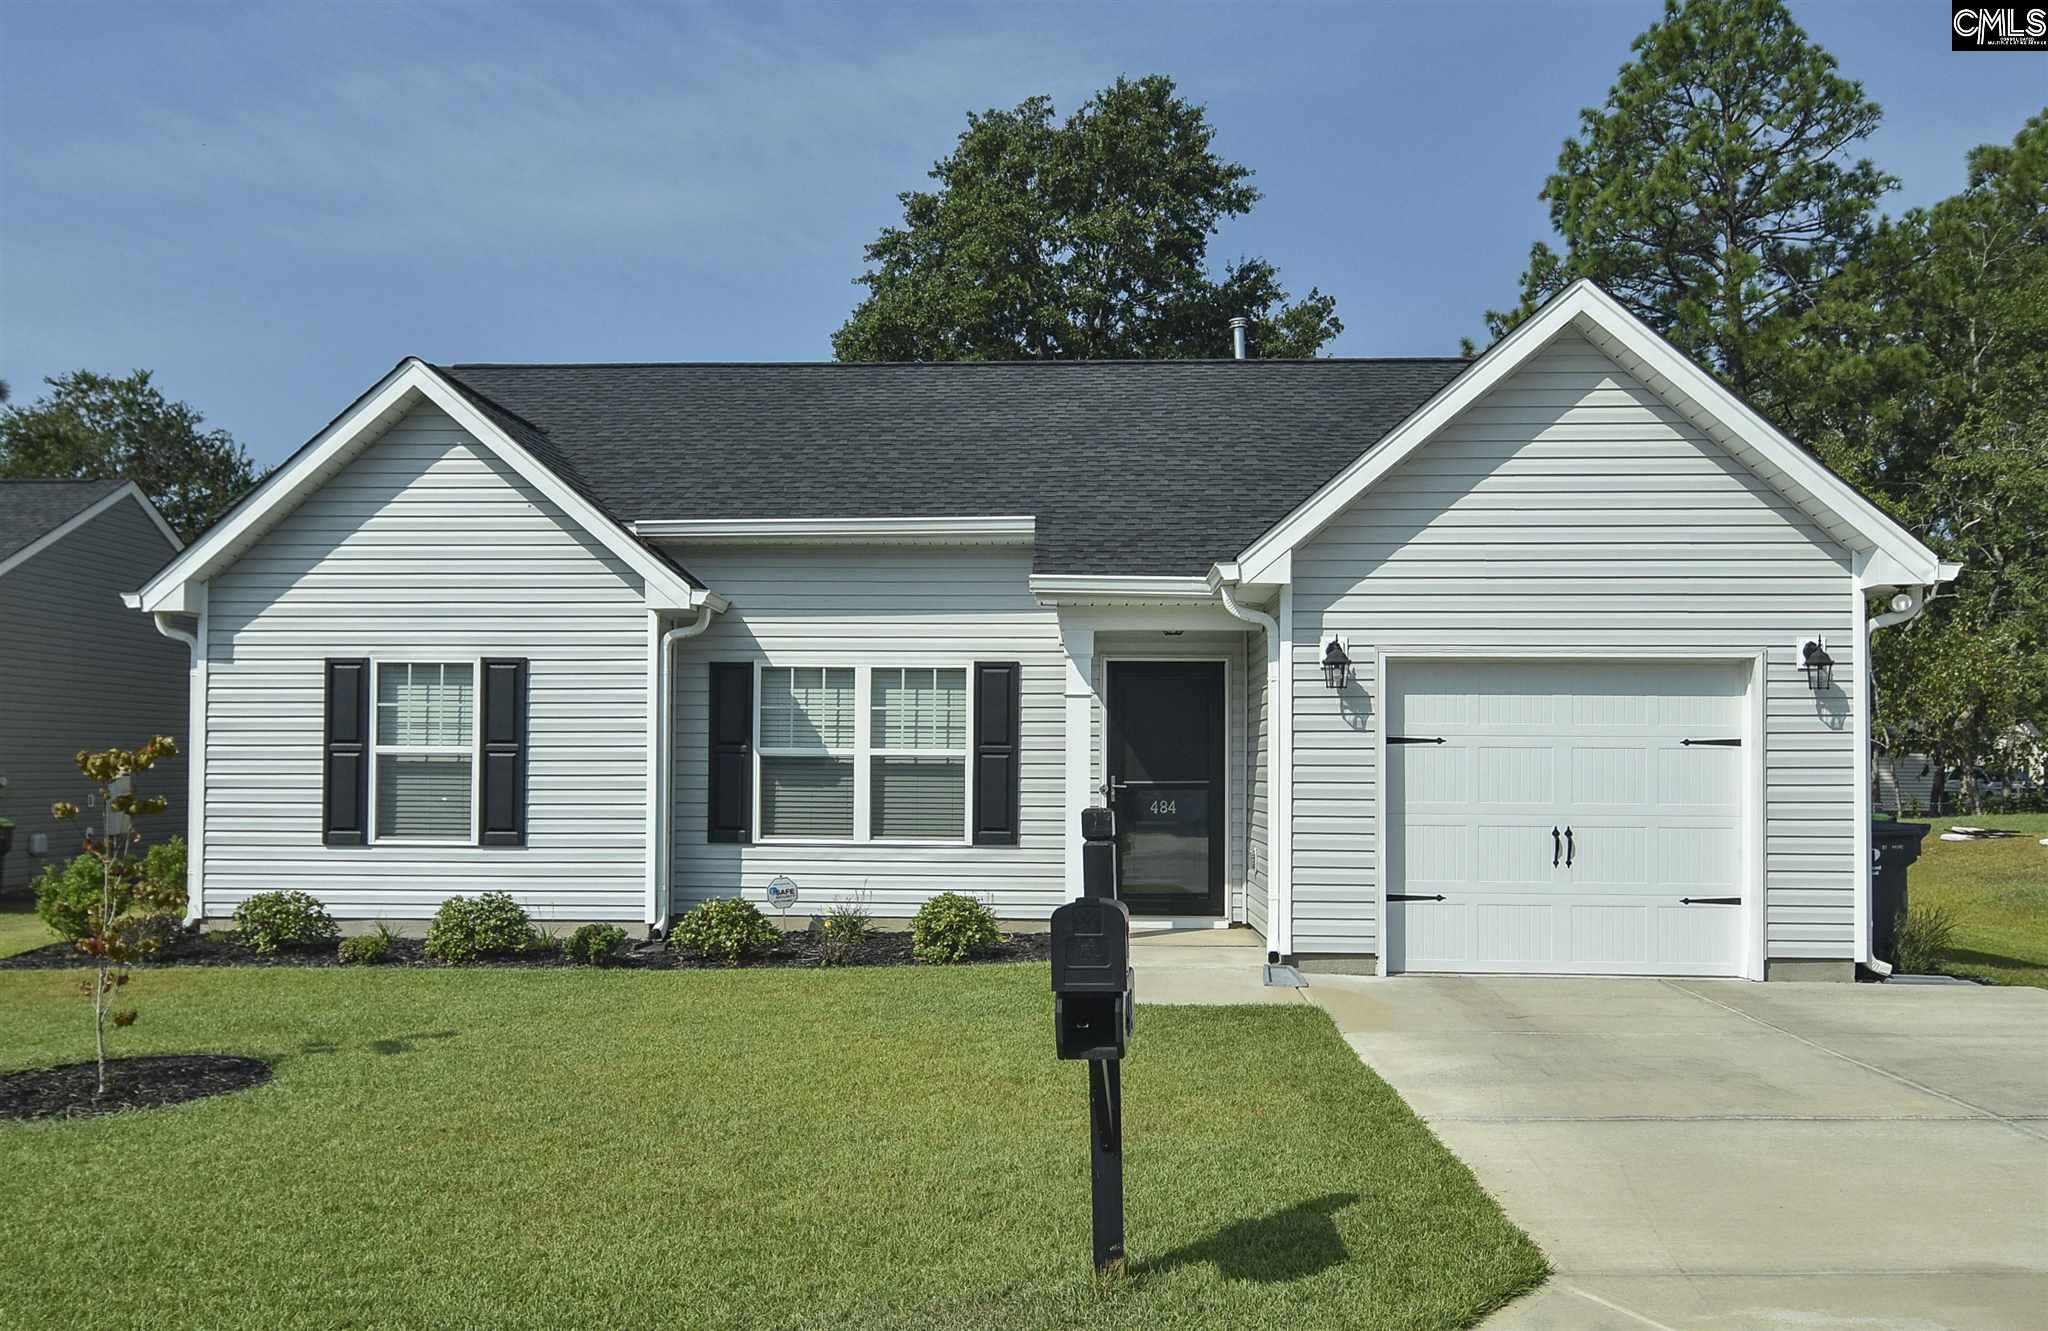 484 Finch Lexington, SC 29073